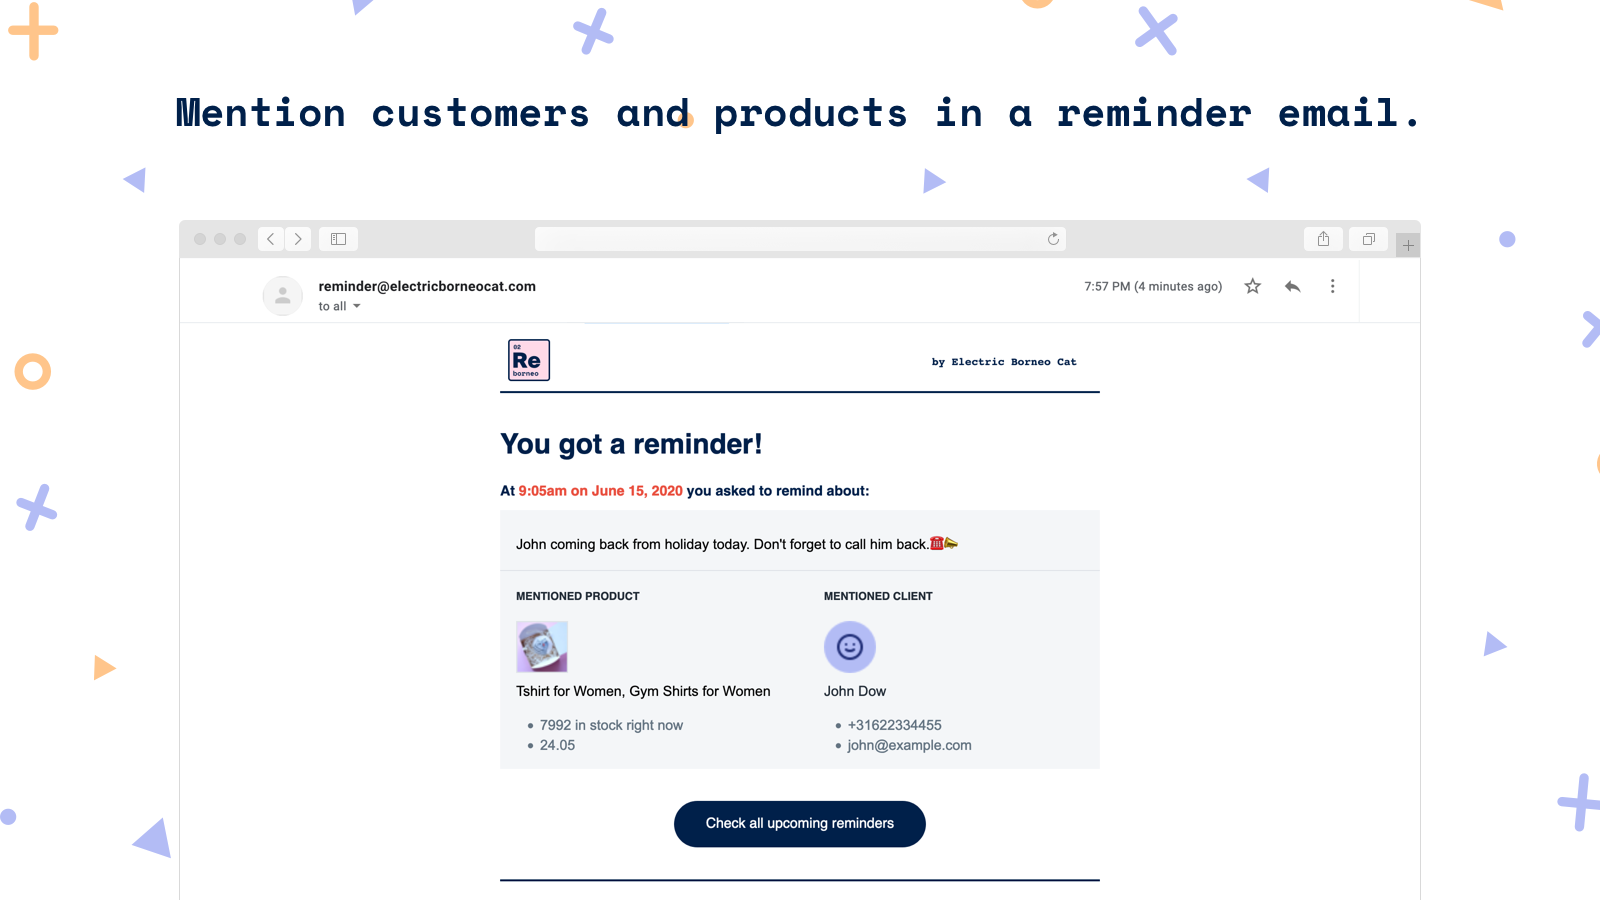 Mention customers and products in a reminder email.